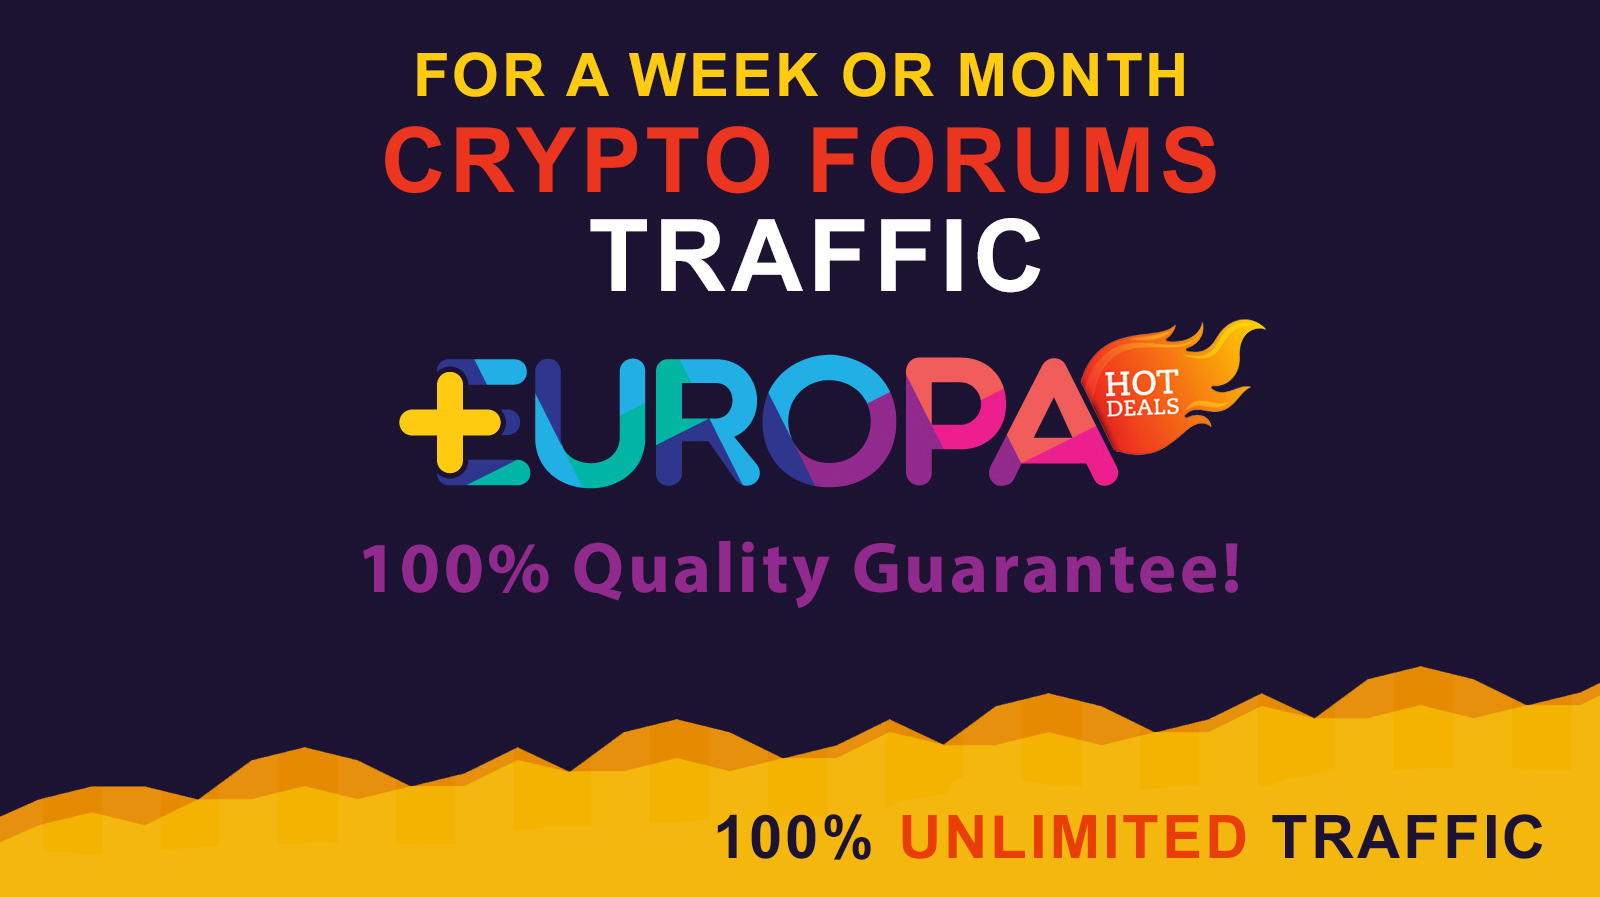 UNLIMITED CRYPTO FORUM TRAFFIC FOR A WEEK OR MONTH PLUS BONUS